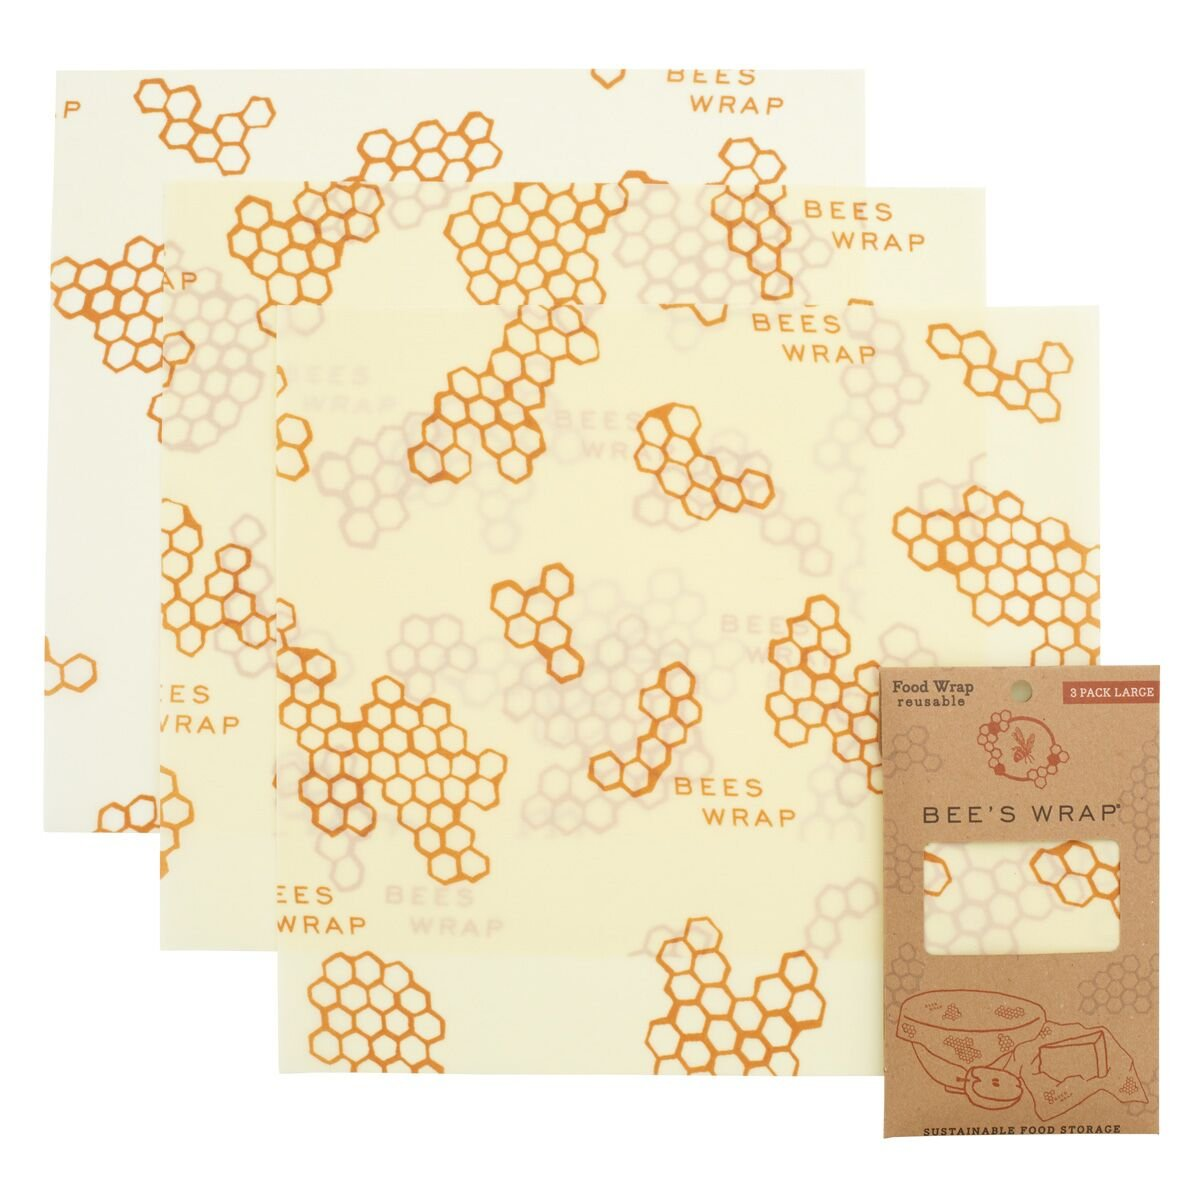 "Bee's Wrap Large 3 Pack, Eco Friendly Reusable Food Wraps, Sustainable Plastic Free Food Storage, Each Wrap Measures 13"" x 14"""